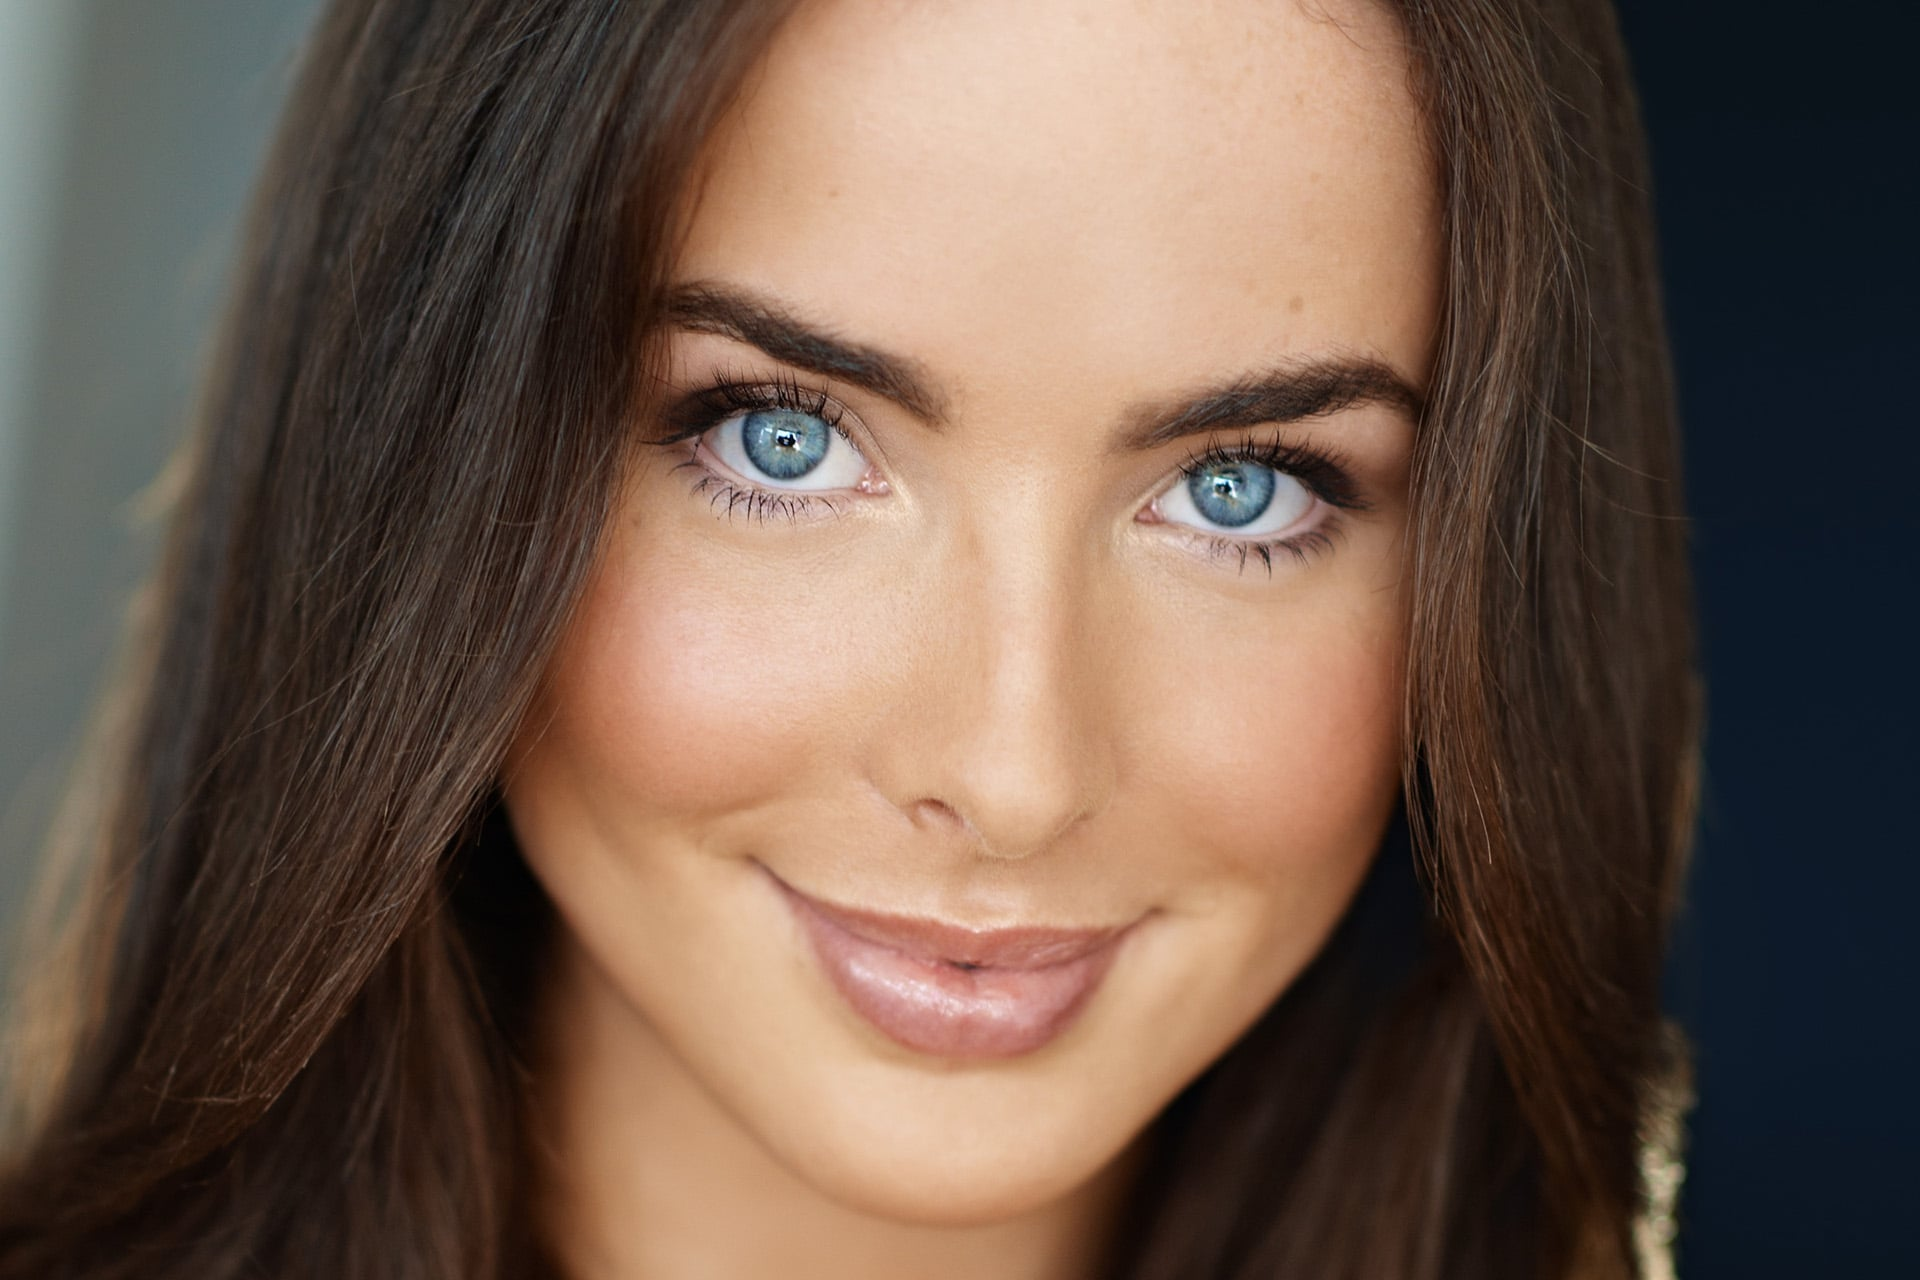 Cute Anime Wallpaper Hd For Iphone 17 Ashleigh Brewer Wallpapers Hd Download